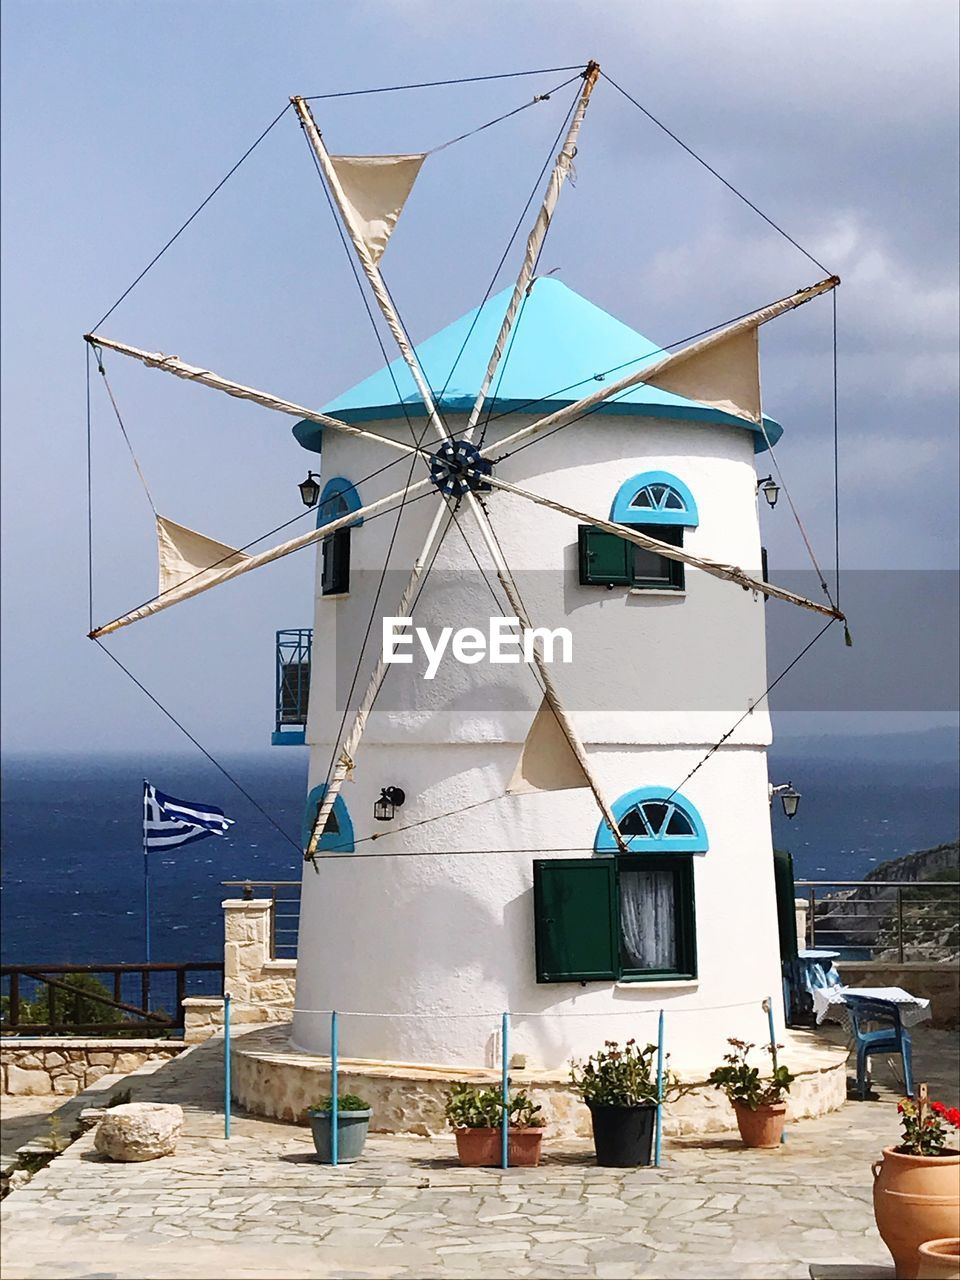 sky, nature, architecture, environmental conservation, wind power, built structure, building exterior, wind turbine, fuel and power generation, renewable energy, alternative energy, day, turbine, traditional windmill, building, no people, environment, cloud - sky, outdoors, blue